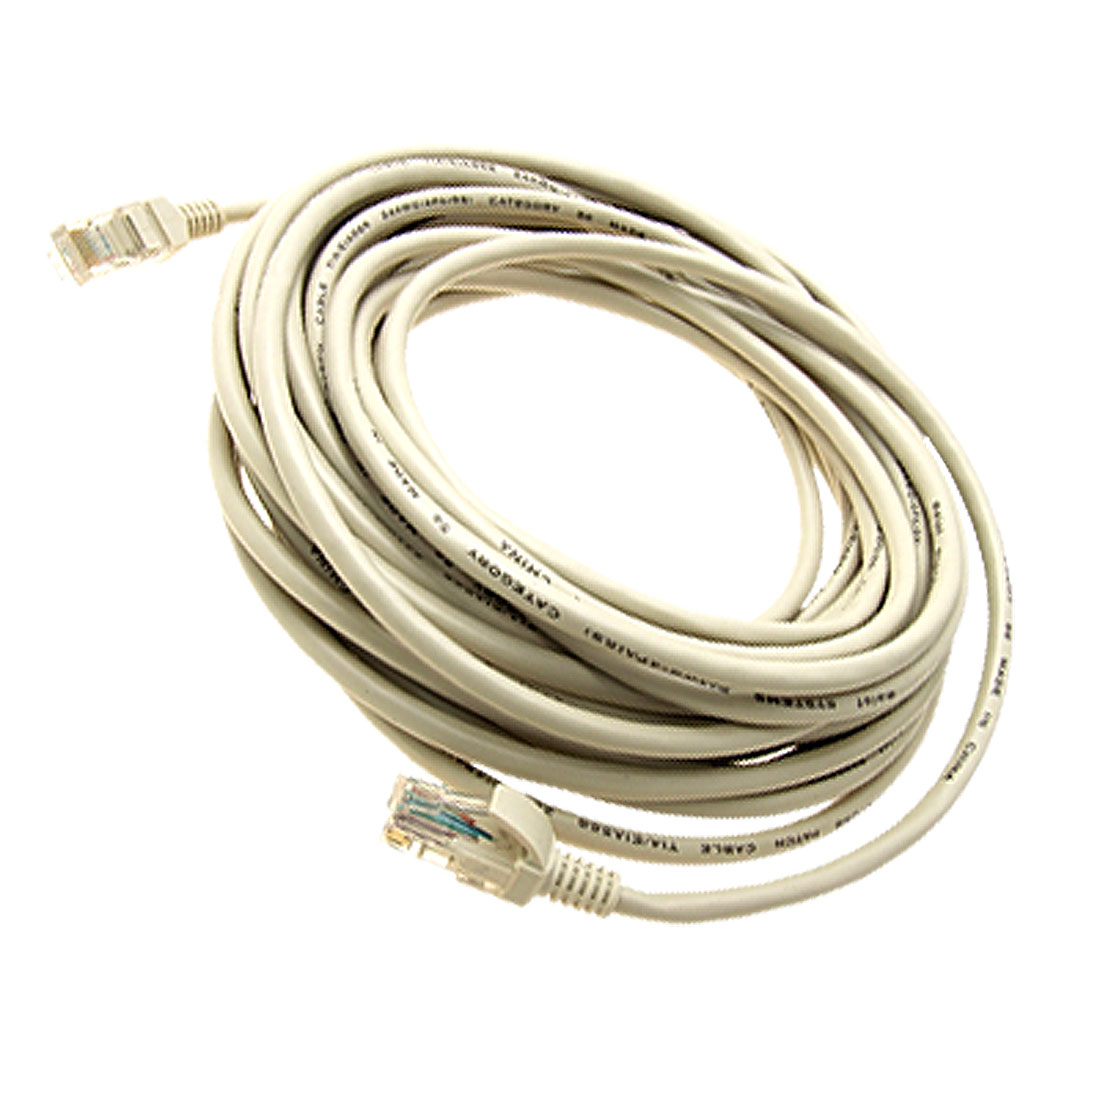 RJ45 Ethernet Lan Network Extension 10m Cable